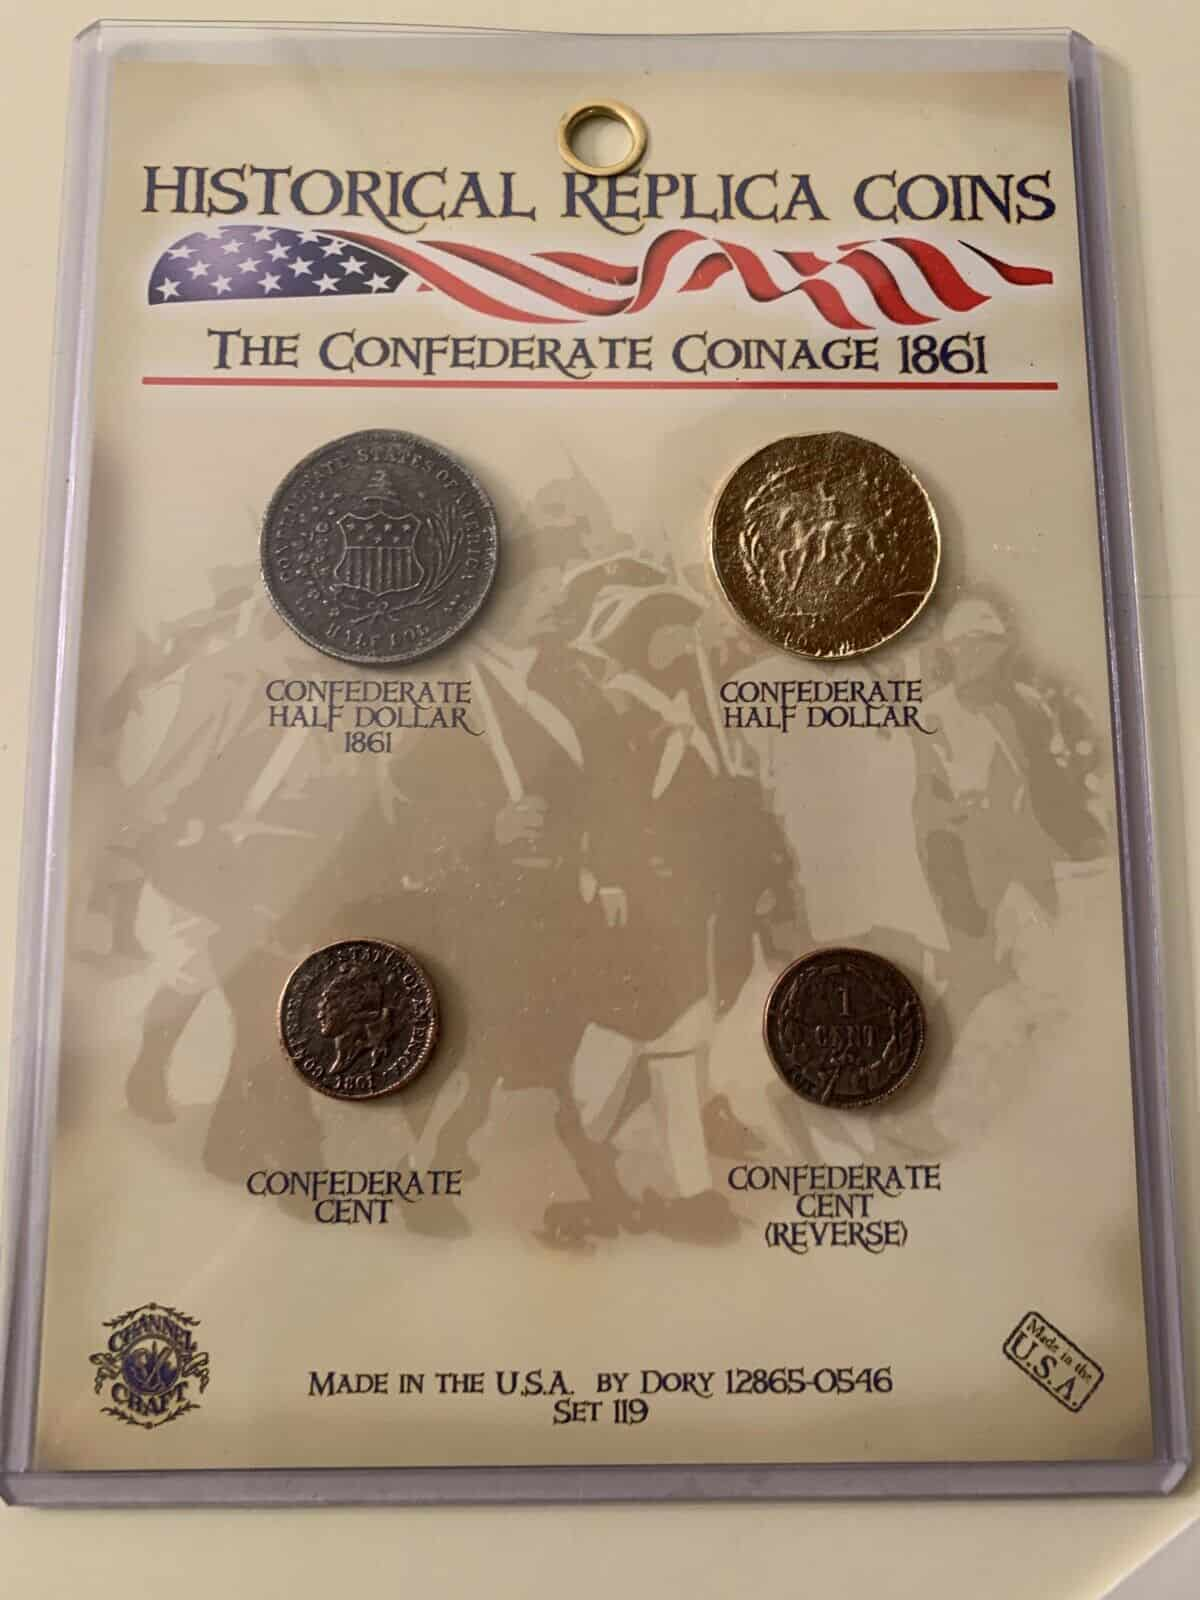 Confederate Coinage - 1861